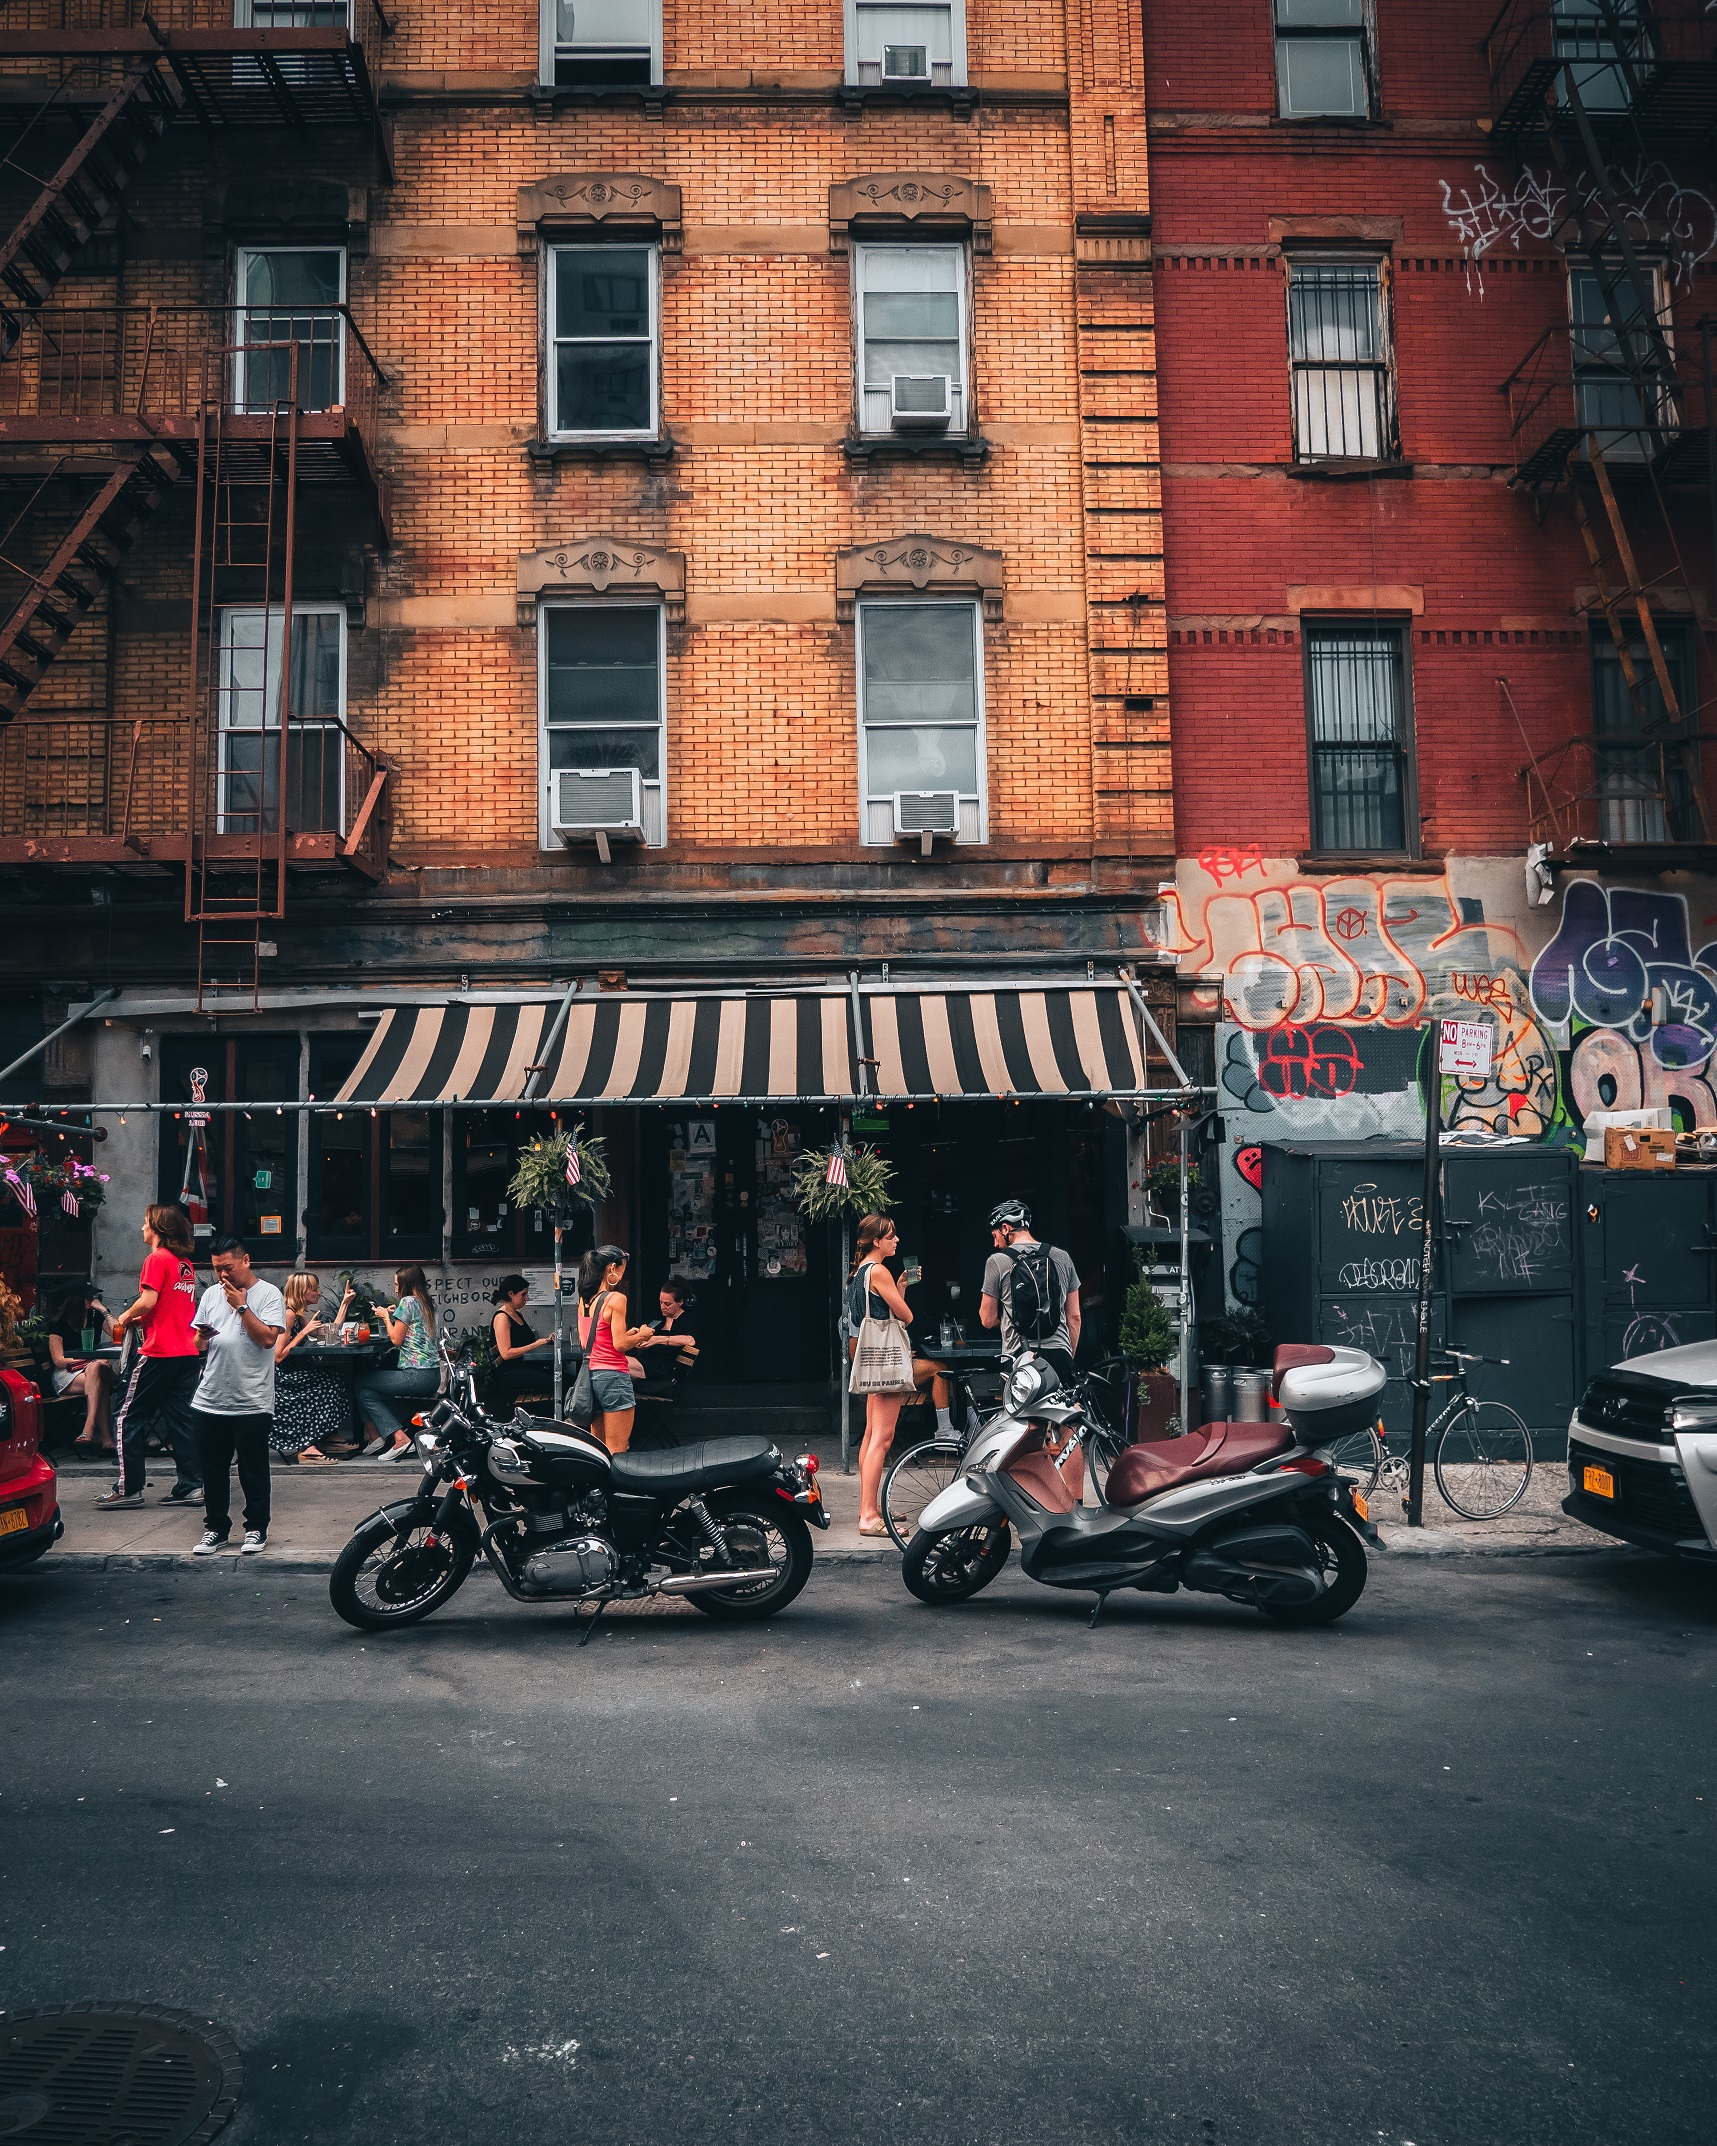 Two motorcycles parked in front of cafe in Manhattan, New York